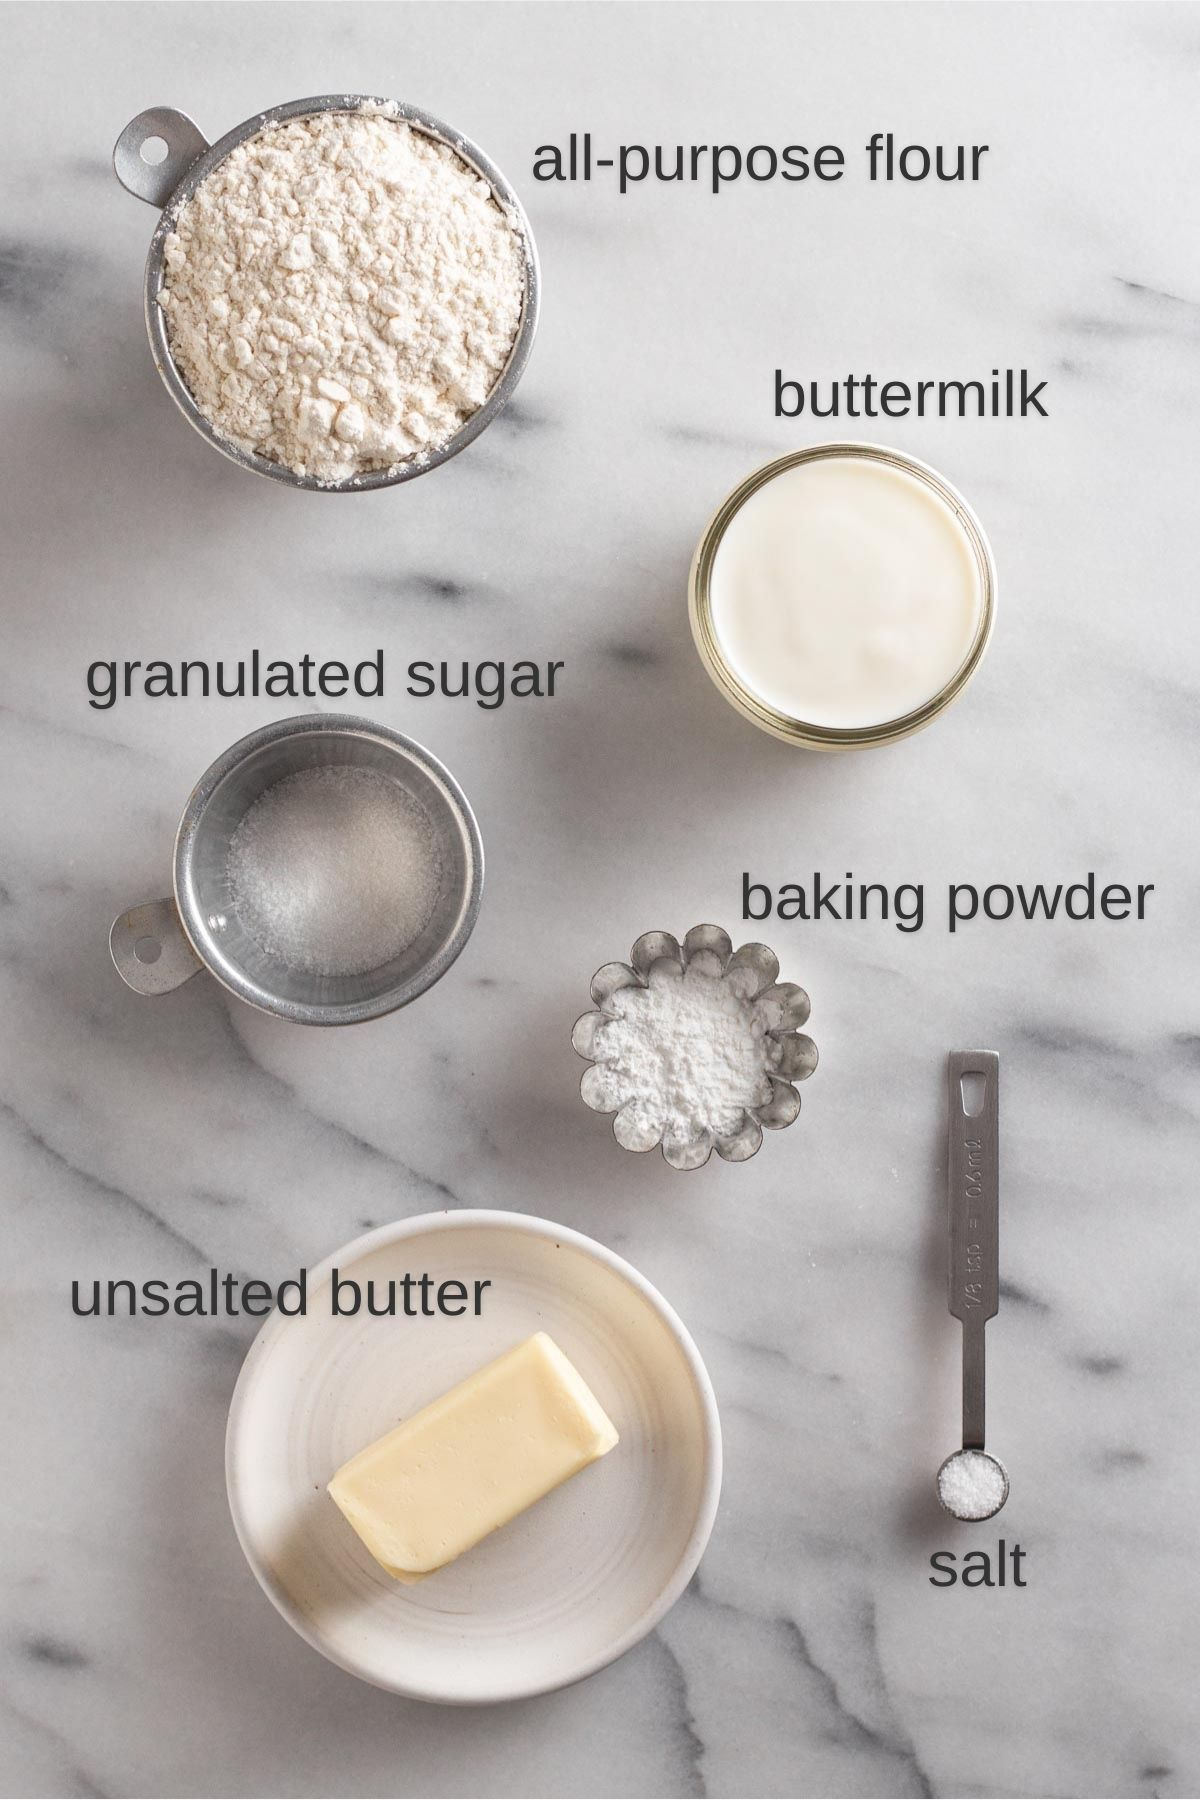 overhead view of recipe ingredients on a marble surface